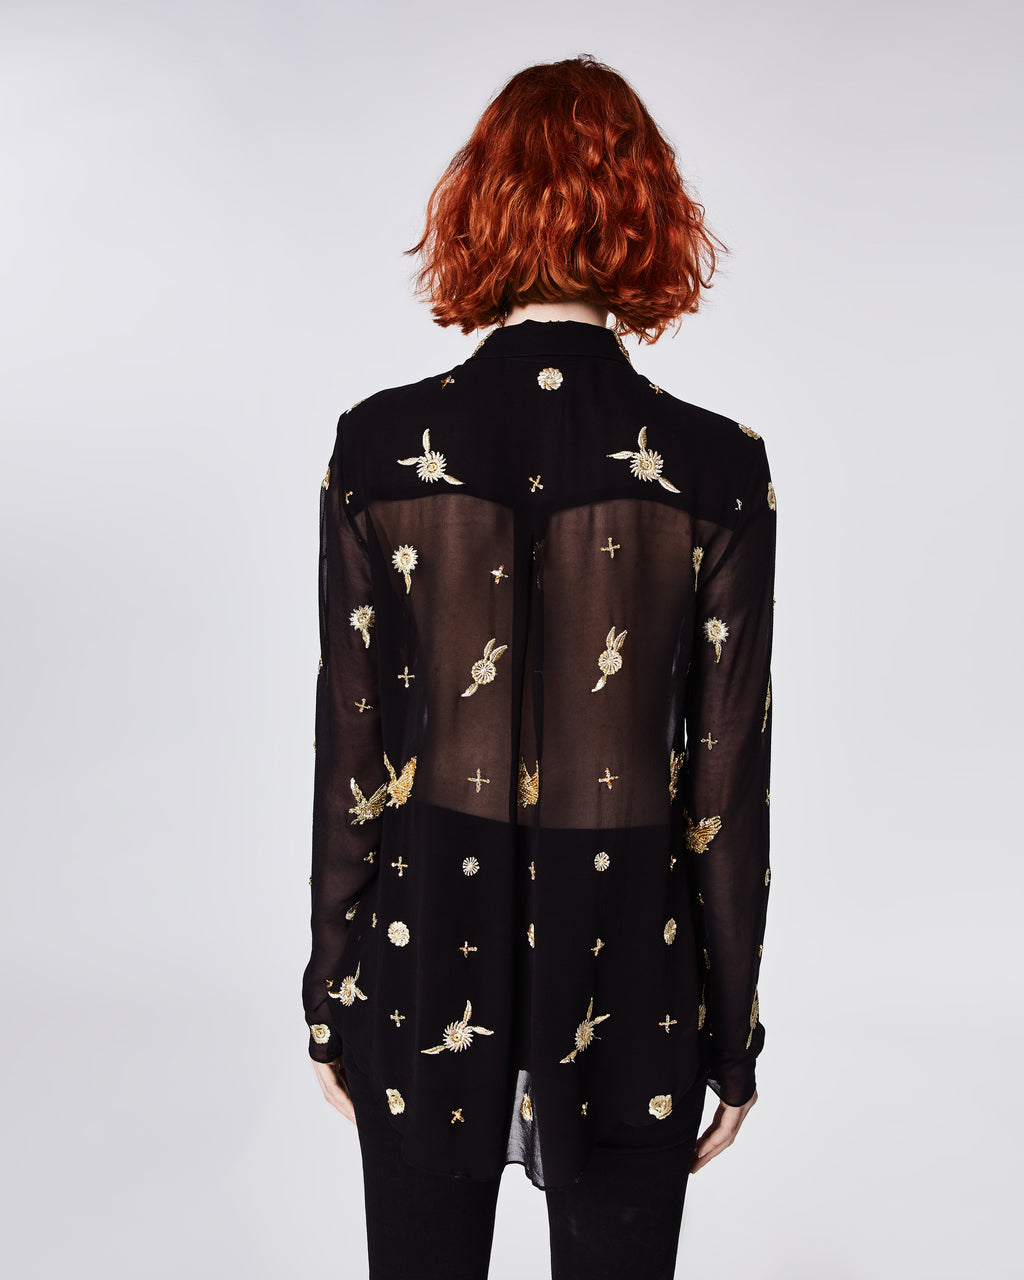 CF10257 - EMBELLISHED EAGLE BOYFRIEND SHIRT - tops - blouses - In a translucent black silk, this boyfriend blousefeatures intricate gold embroidery through out. Unlined.